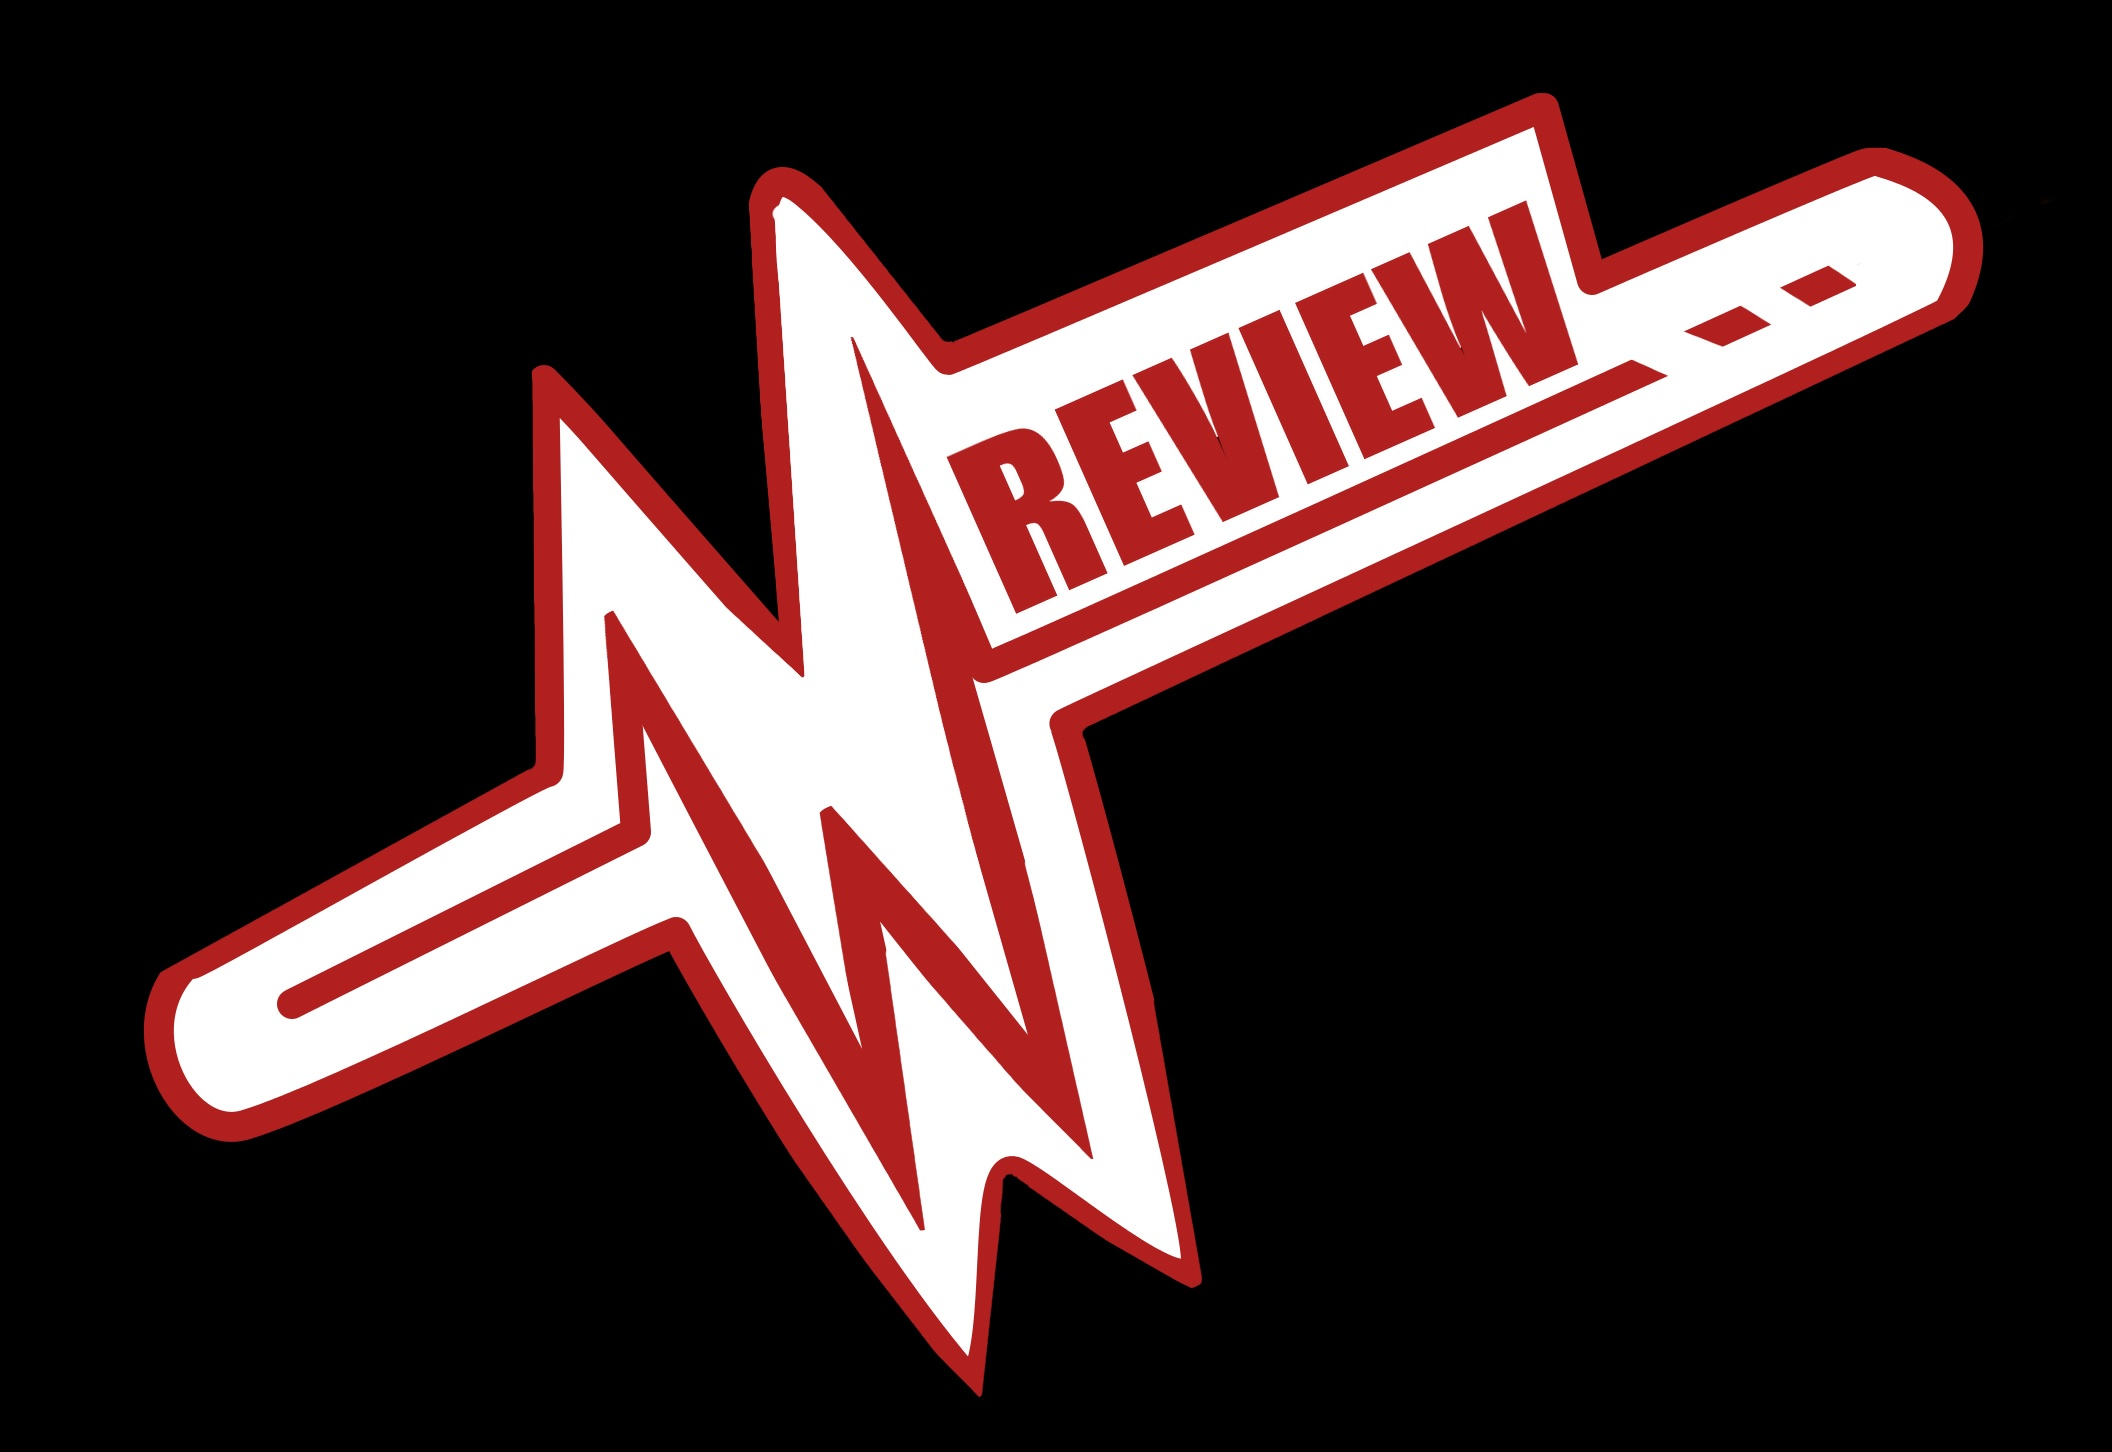 Wreview 09/05/15 - Interview with Billy Kirkwood